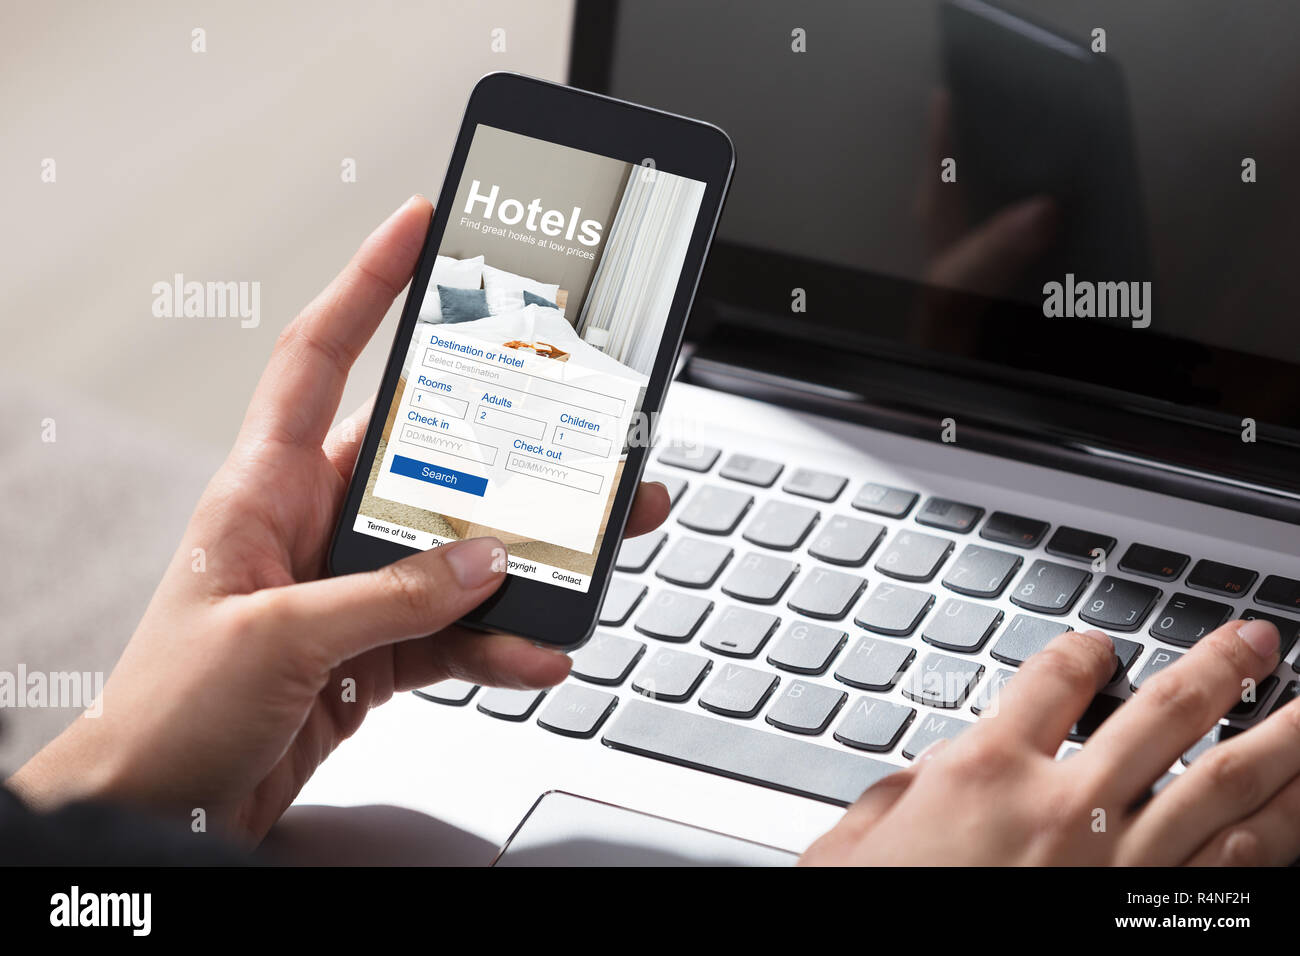 Person Booking Hotels Using Cell Phone - Stock Image